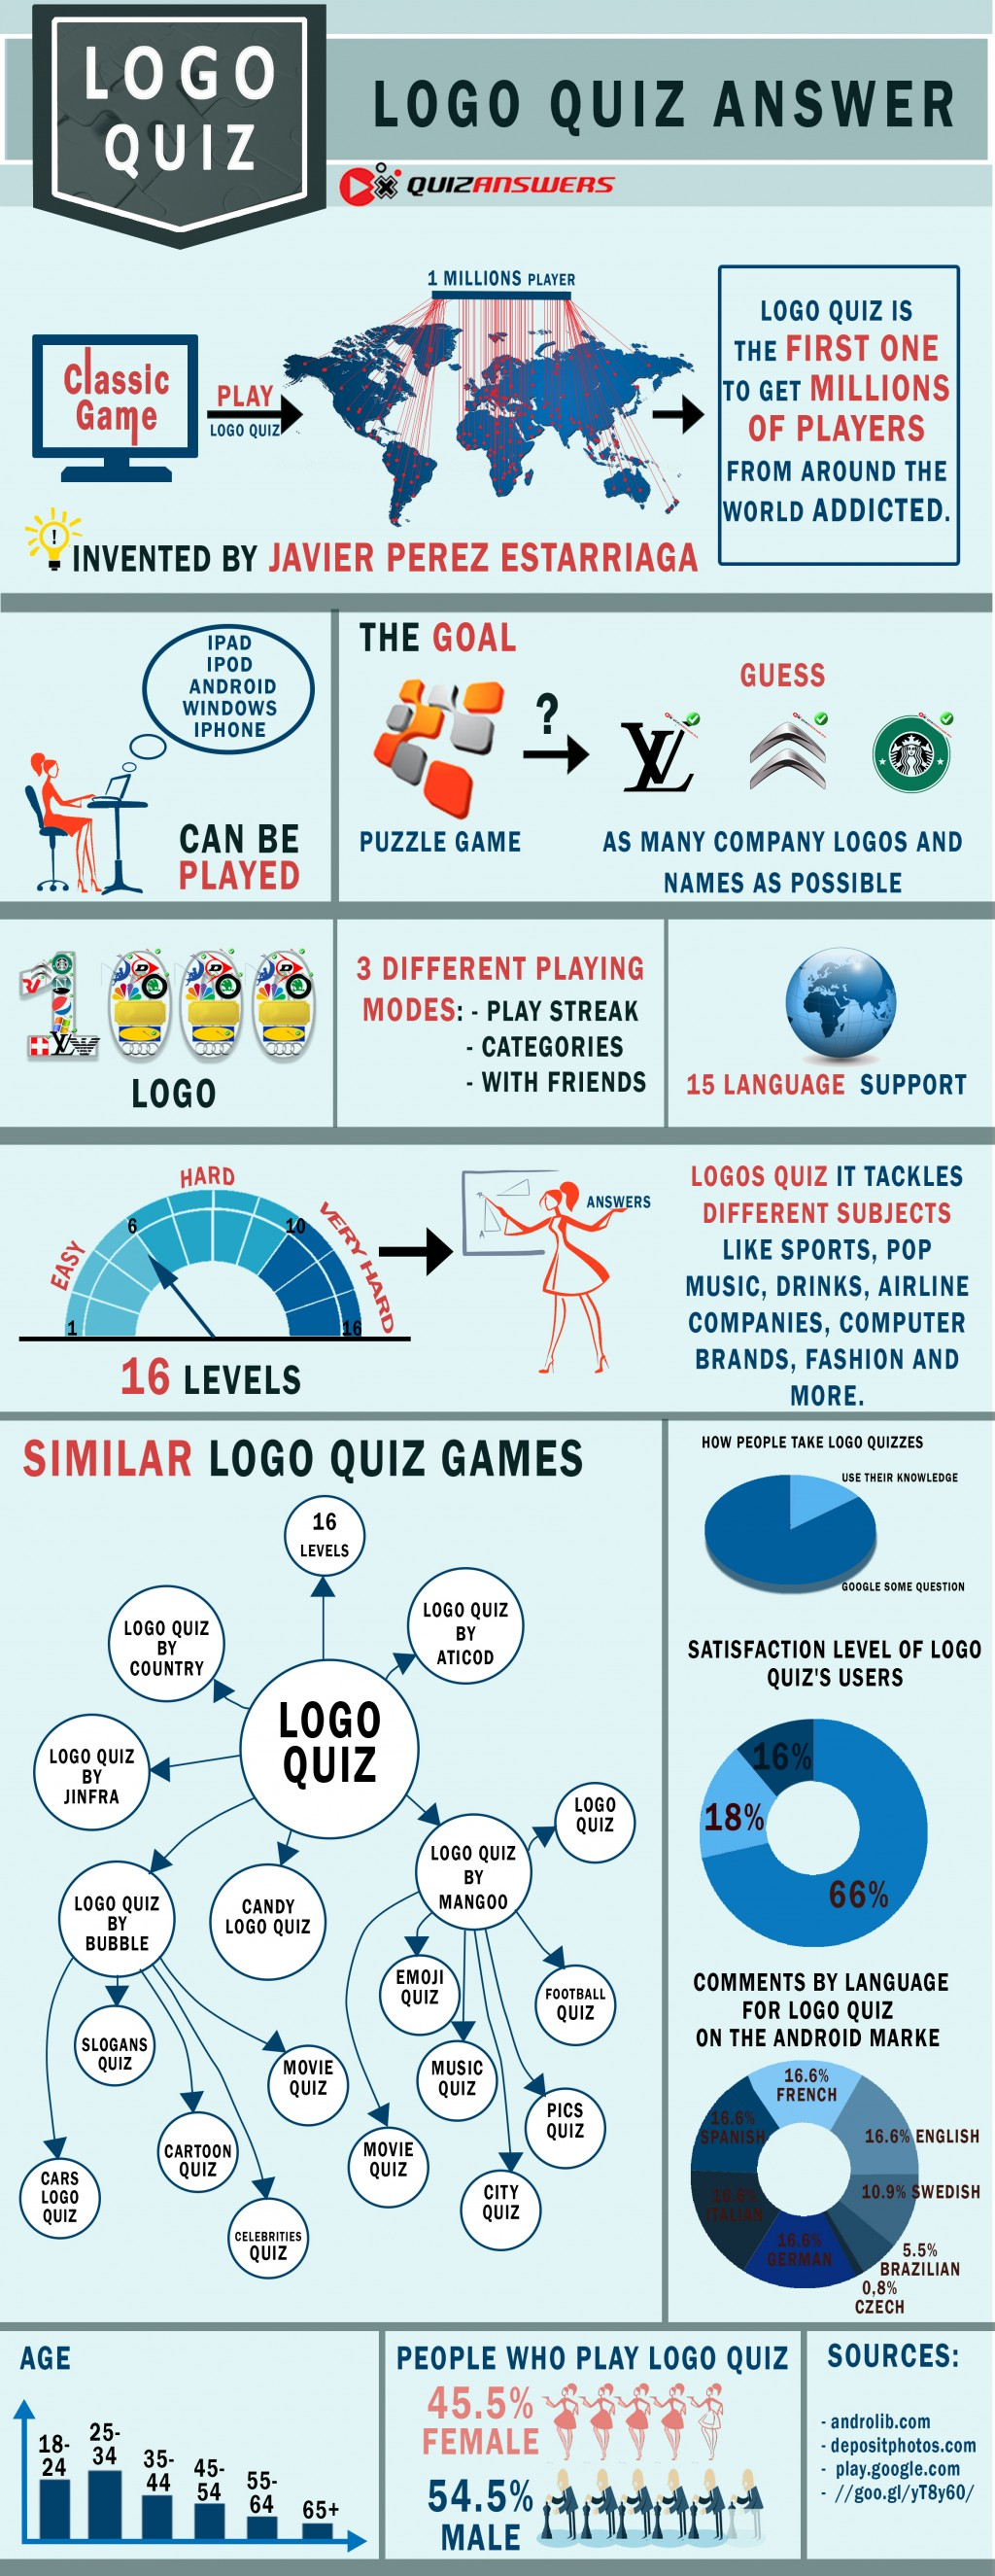 The Logo Quiz game and its stats